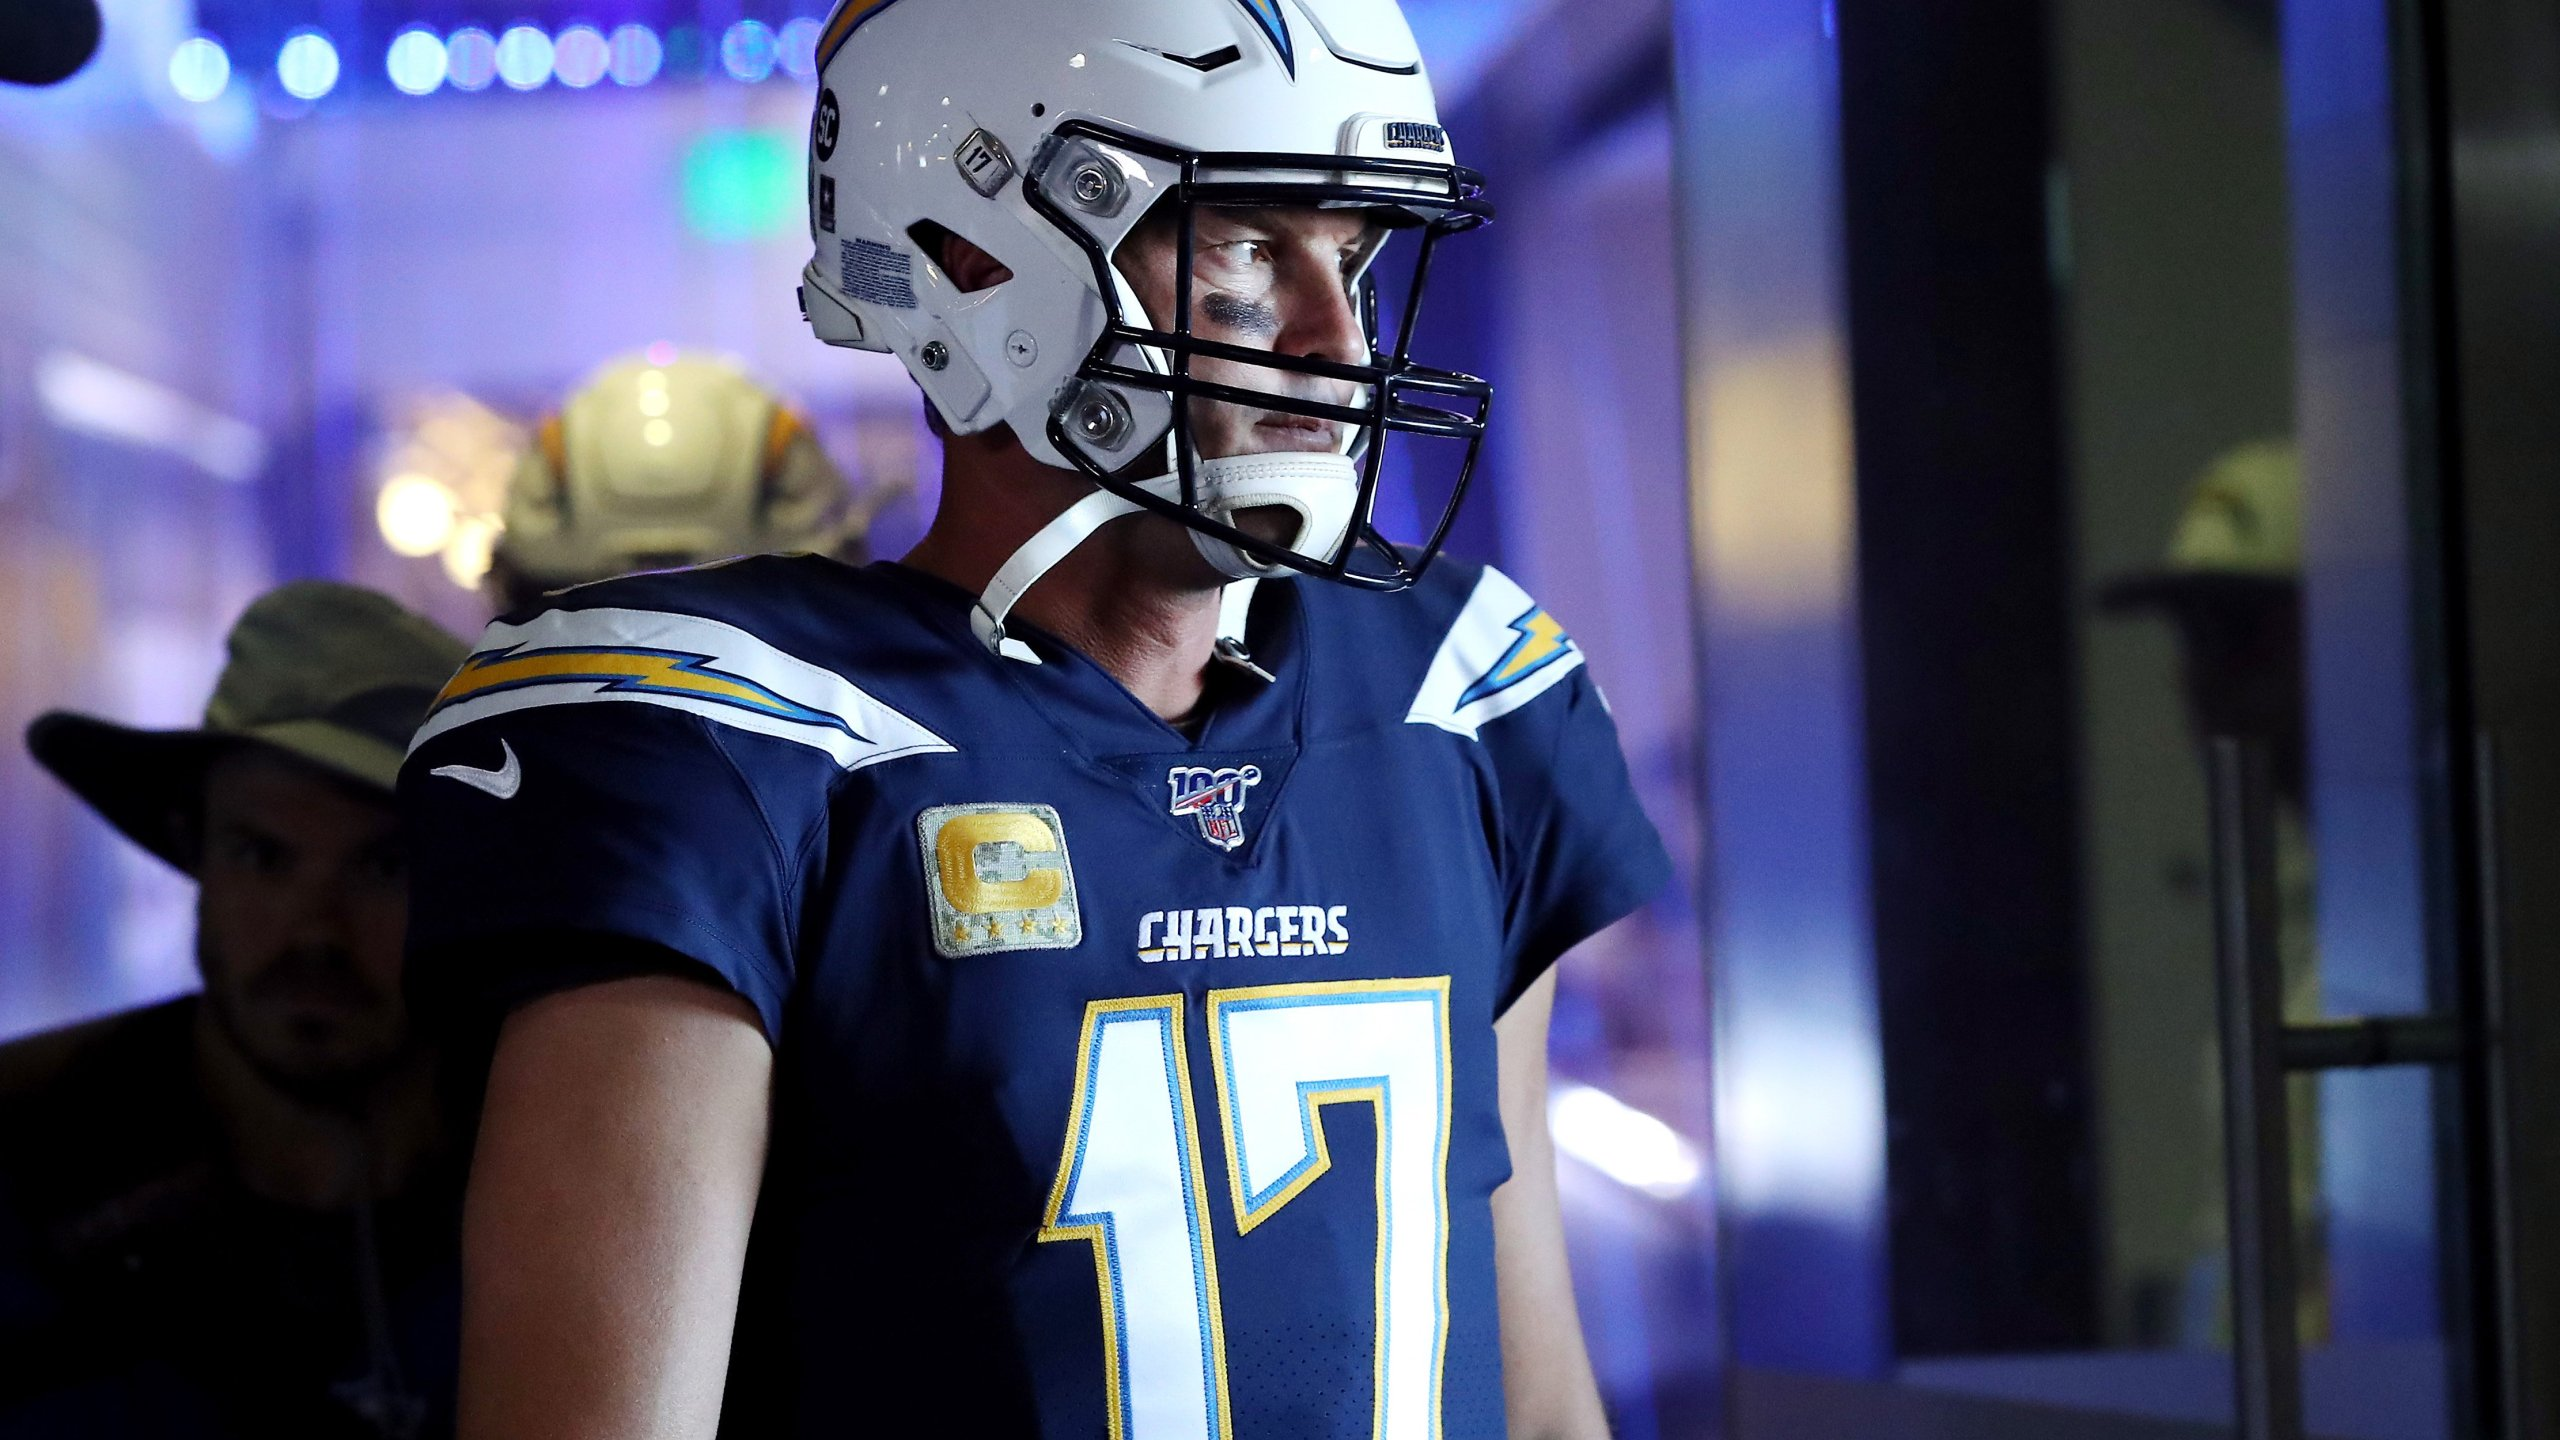 Philip Rivers the Los Angeles Chargers walks to the field before the game against the Green Bay Packers at Dignity Health Sports Park on Nov. 3, 2019 in Carson. (Credit: Sean M. Haffey/Getty Images)